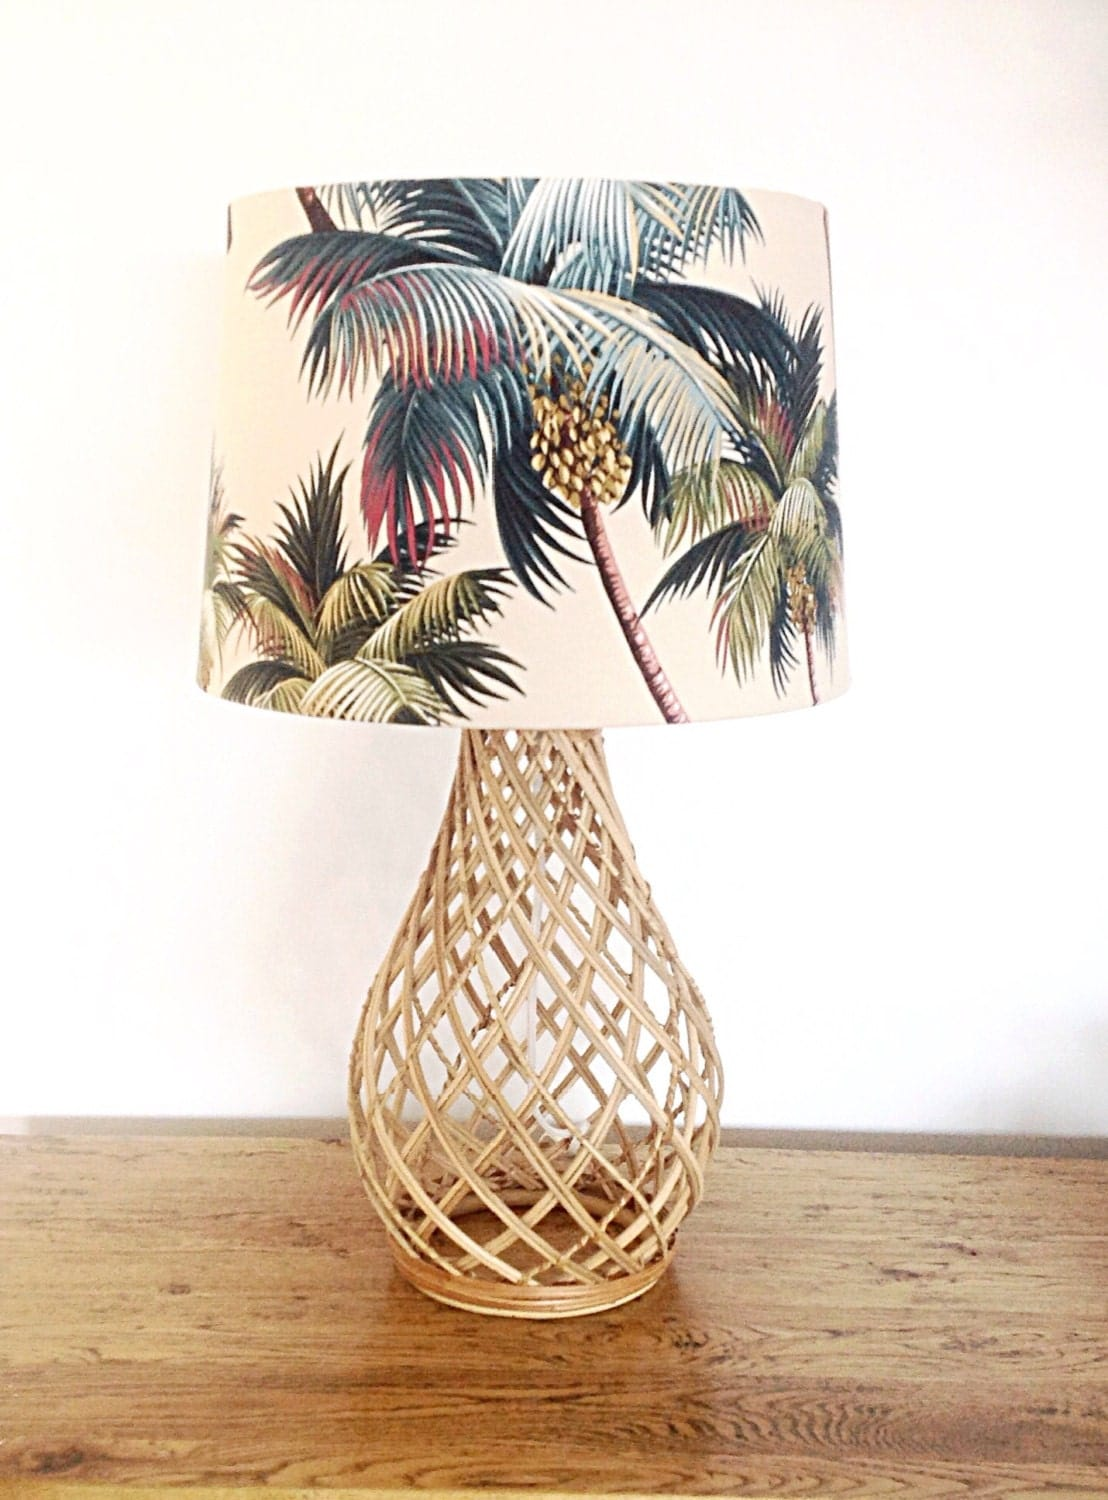 Lampshade Coastal Decor Palm Trees Lamp Shade Beach Decor